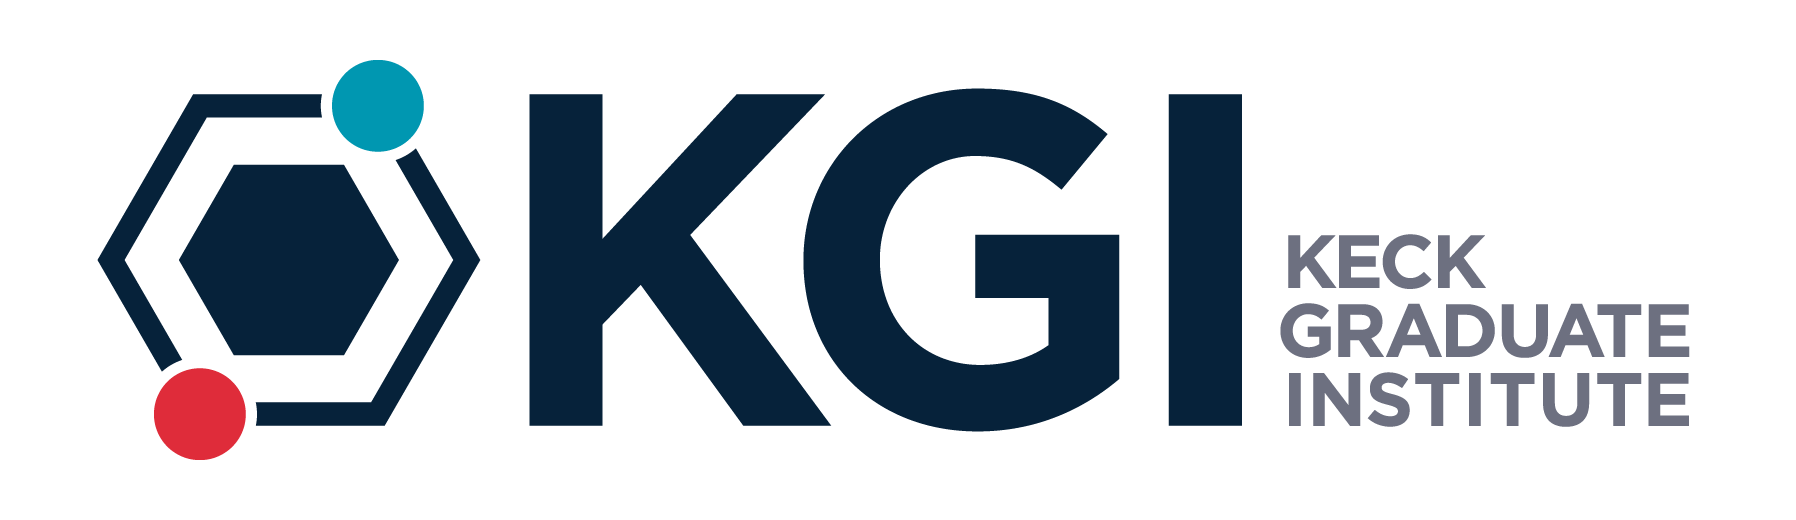 Keck Graduate Institute of Applied Life Sciences